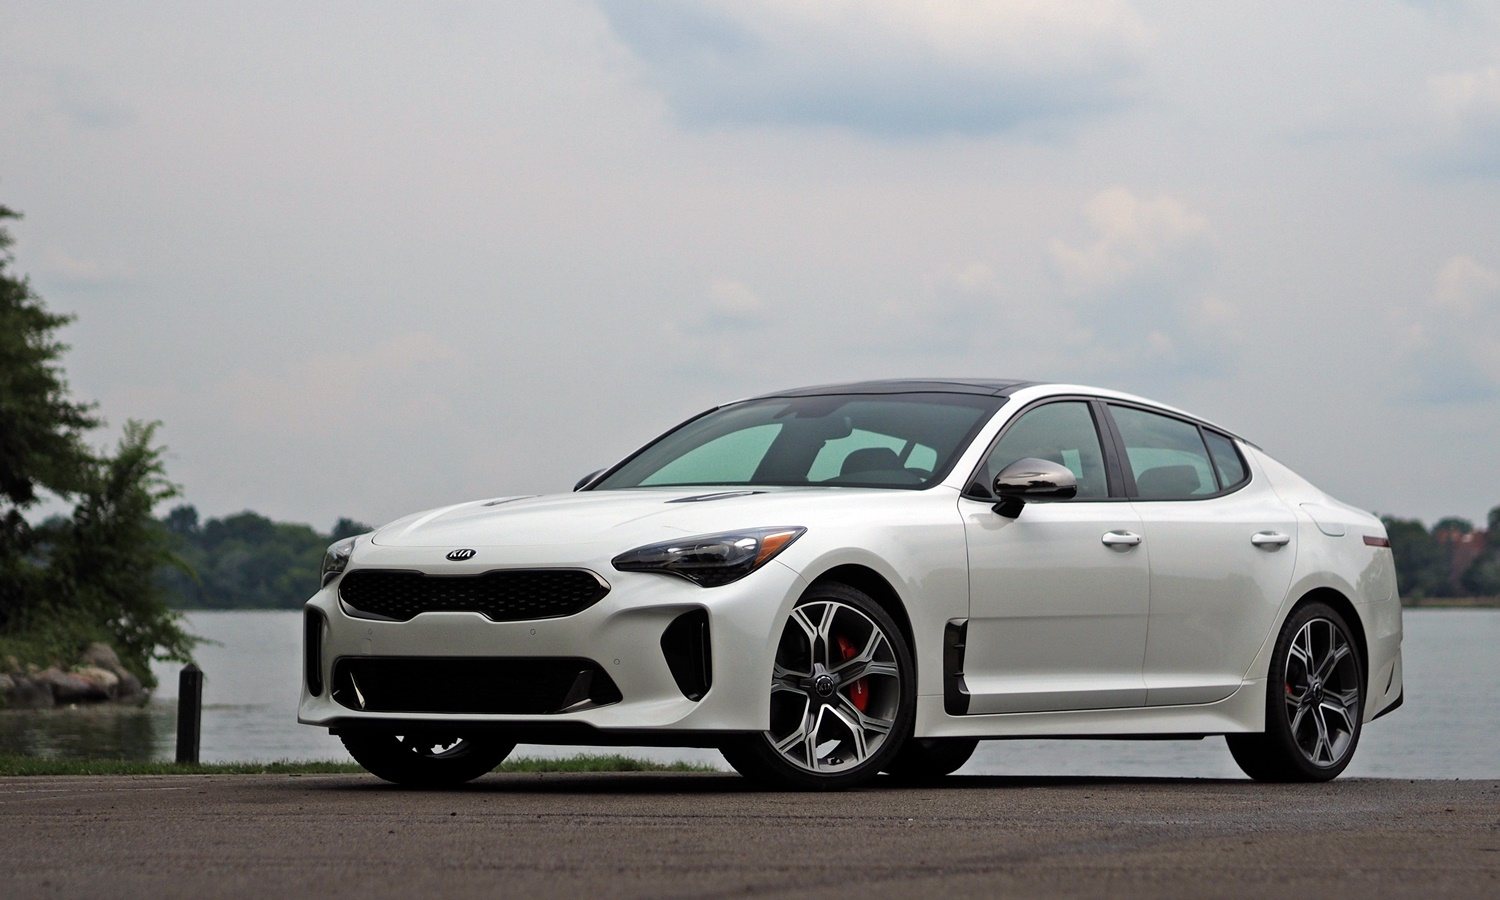 Kia Stinger Photos: Kia Stinger GT front quarter low